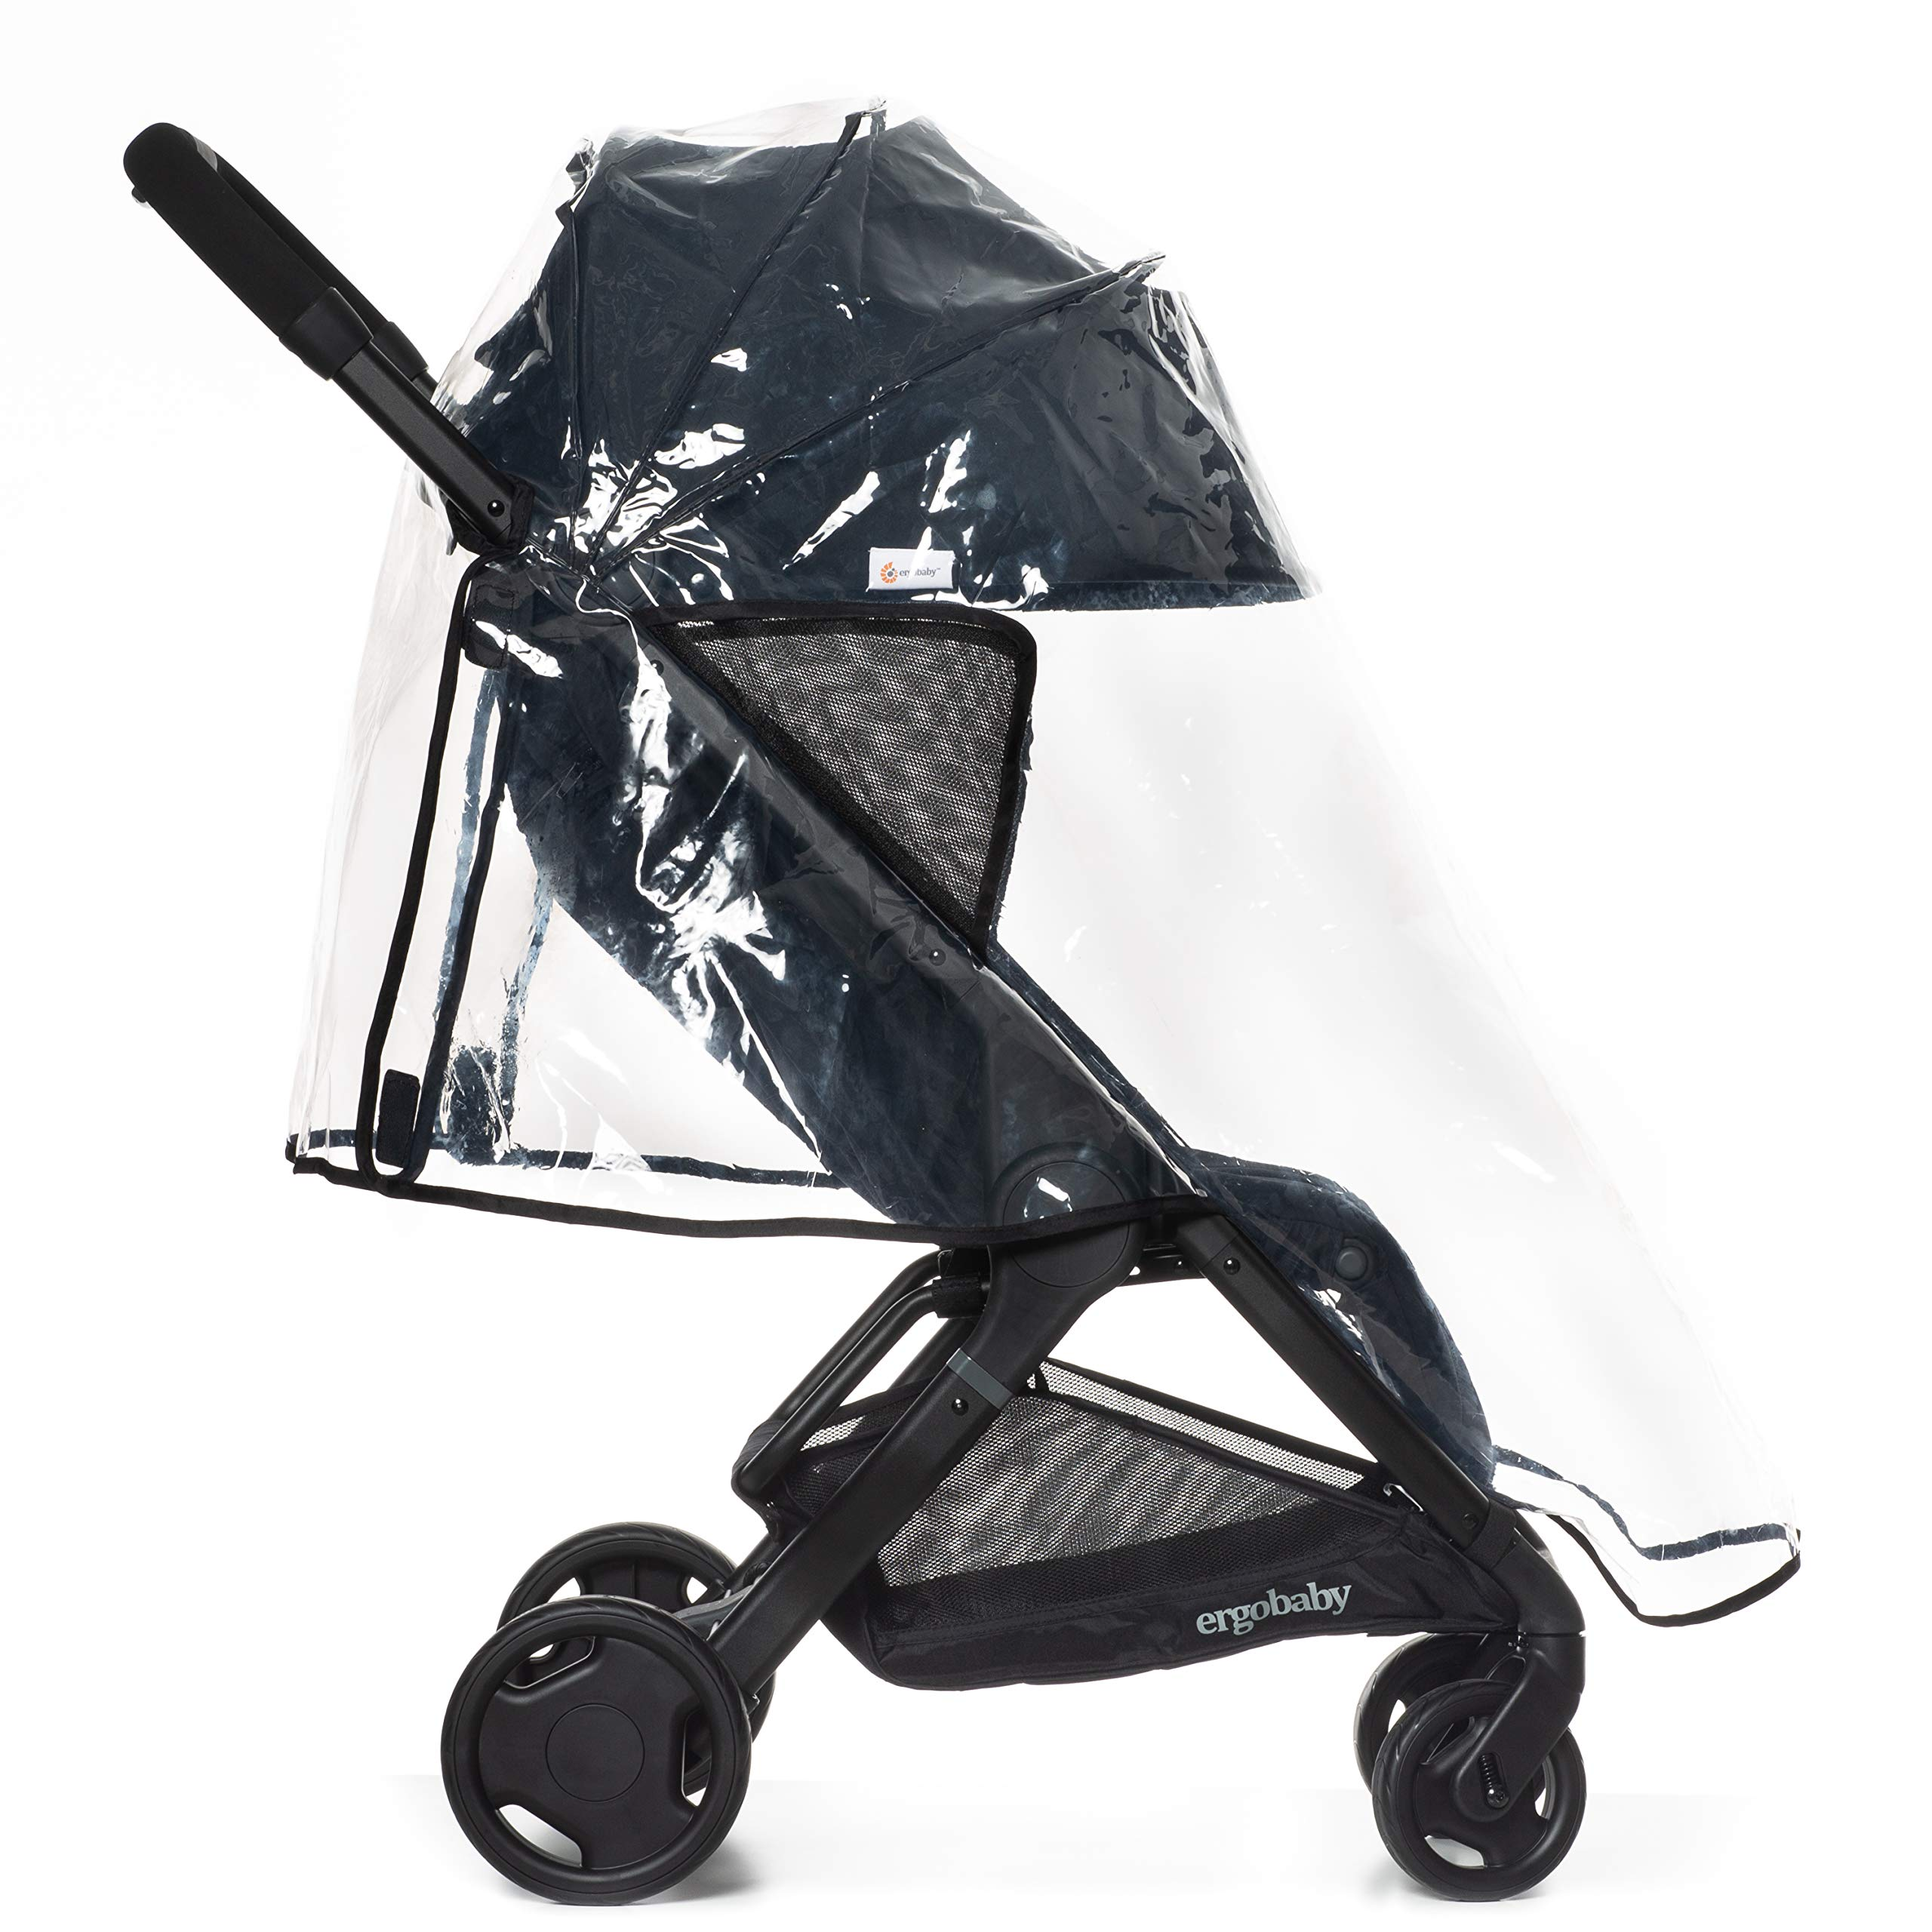 Ergobaby Metro Compact City Stroller Accessories, Weather Shield by Ergobaby (Image #1)